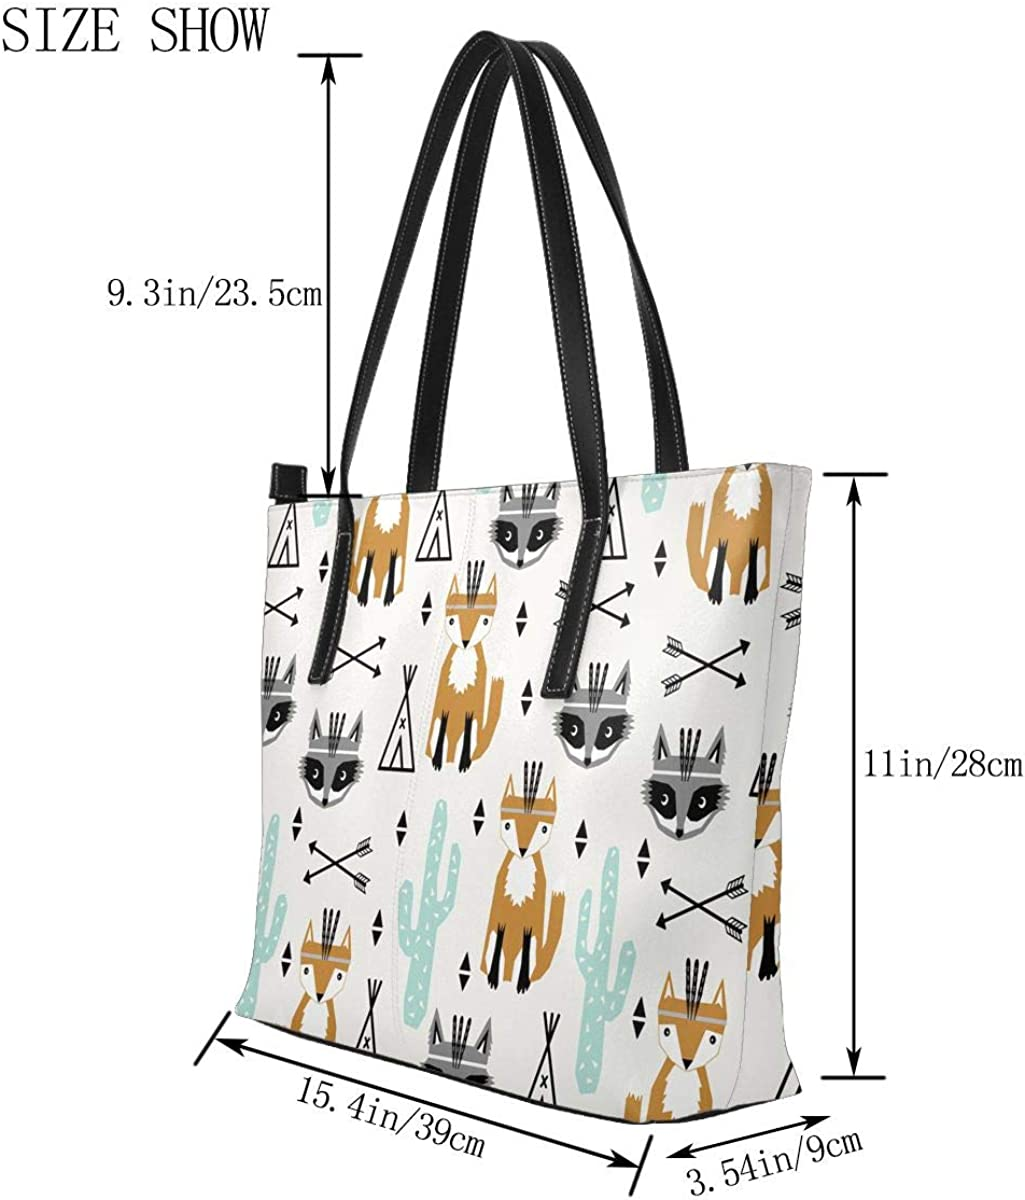 Orange Fox Arrow White Cactus PU Leather Printed Pattern Casual Handbags Shoulder Tote Bag Purse For Women Girls Vintage Tote Shopping Bags